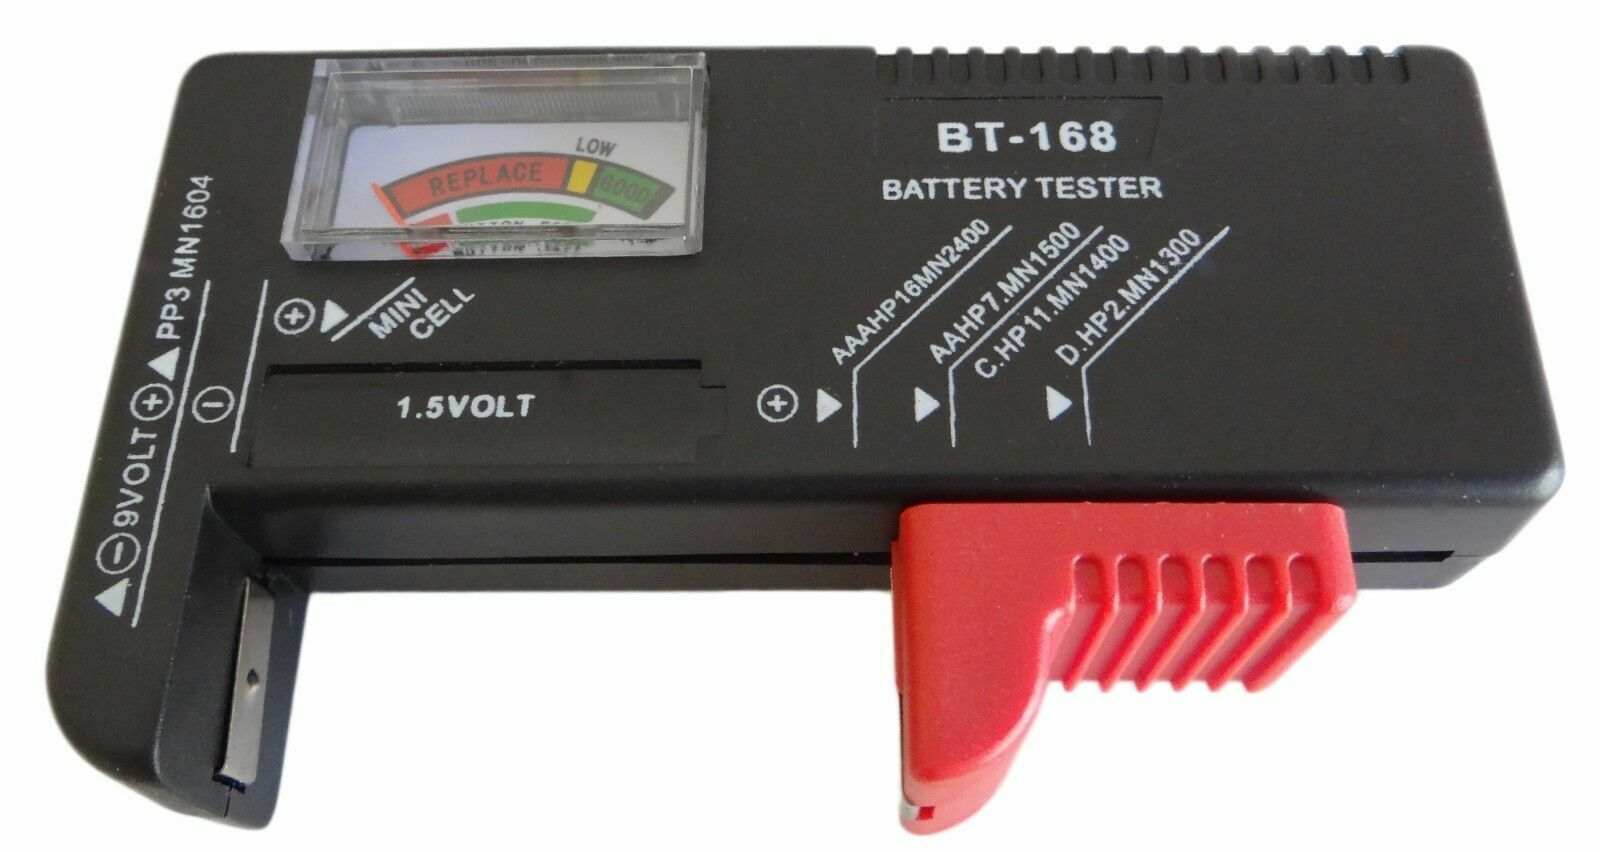 Gift Idea Universal Battery Tester AA/AAA/C/D/9V Button Cell Volt Test US SELLER Battery Testers